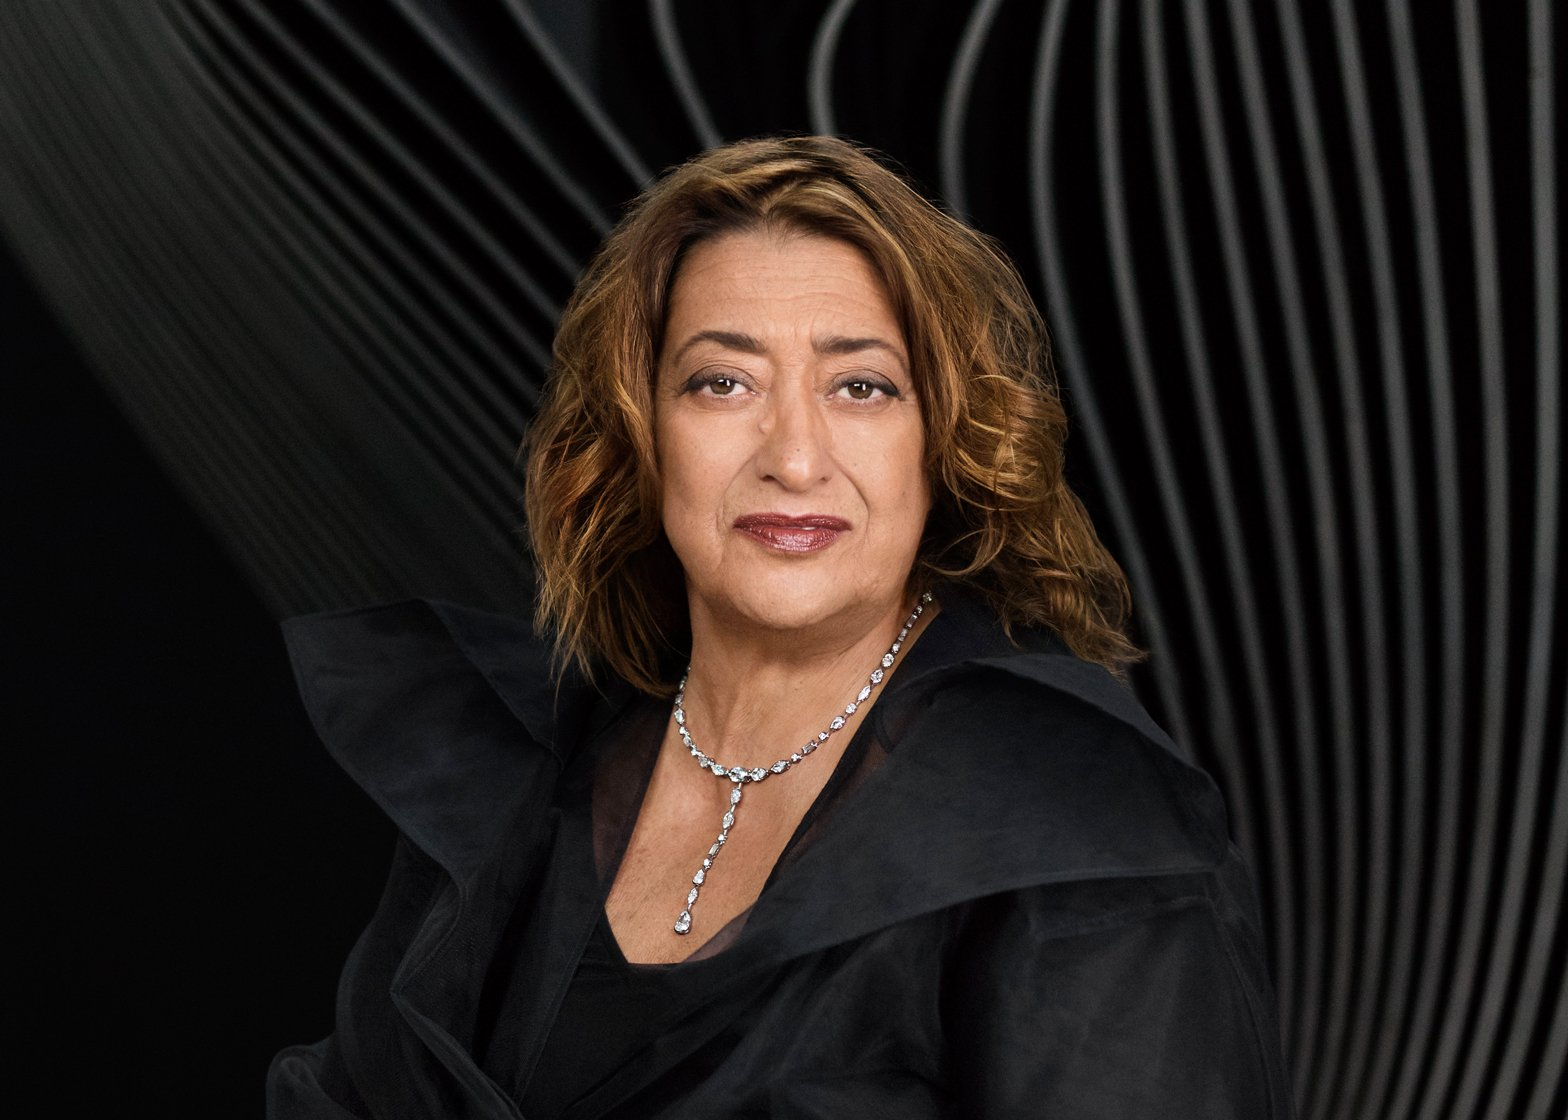 zaha-hadid-portrait-mary-mccartney-dezee